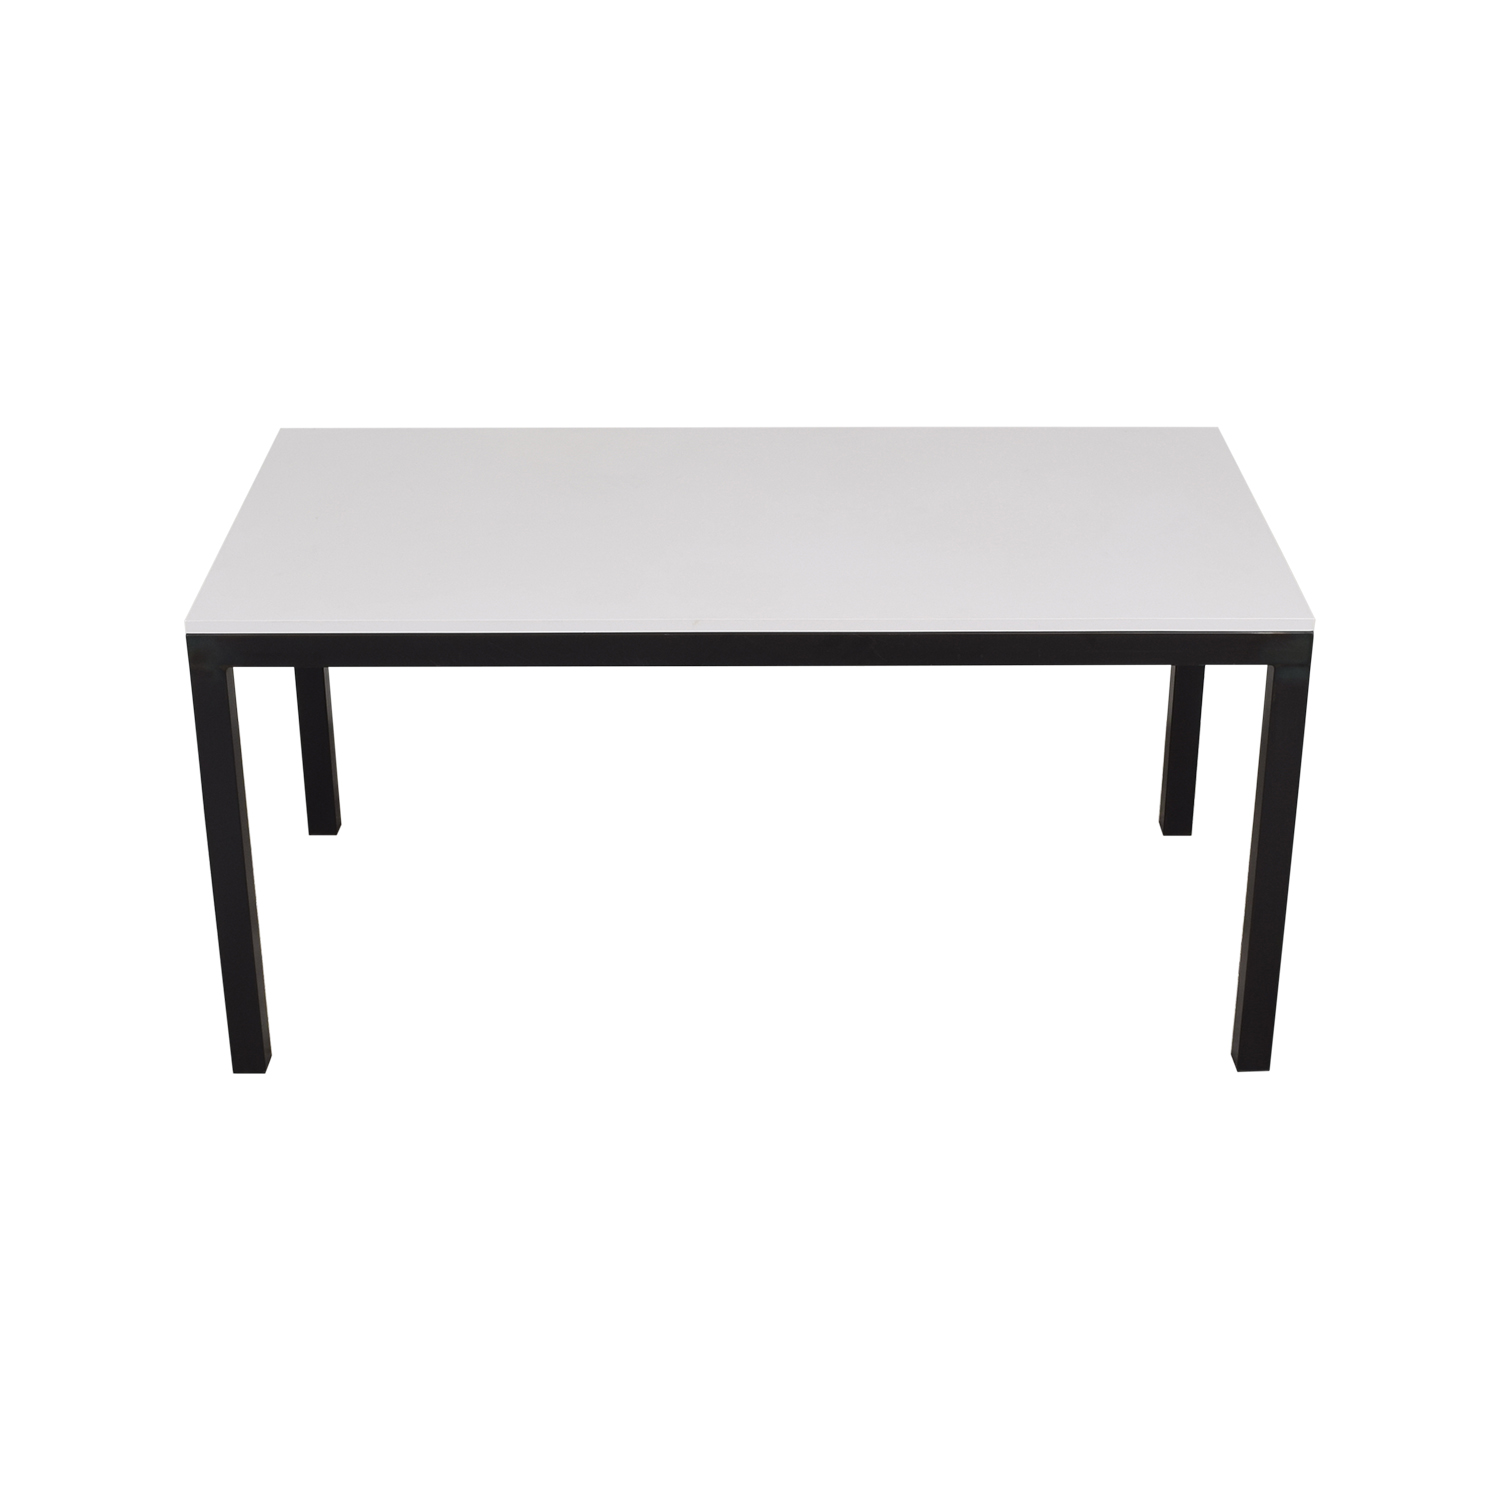 shop Room & Board Parson Table Room & Board Utility Tables